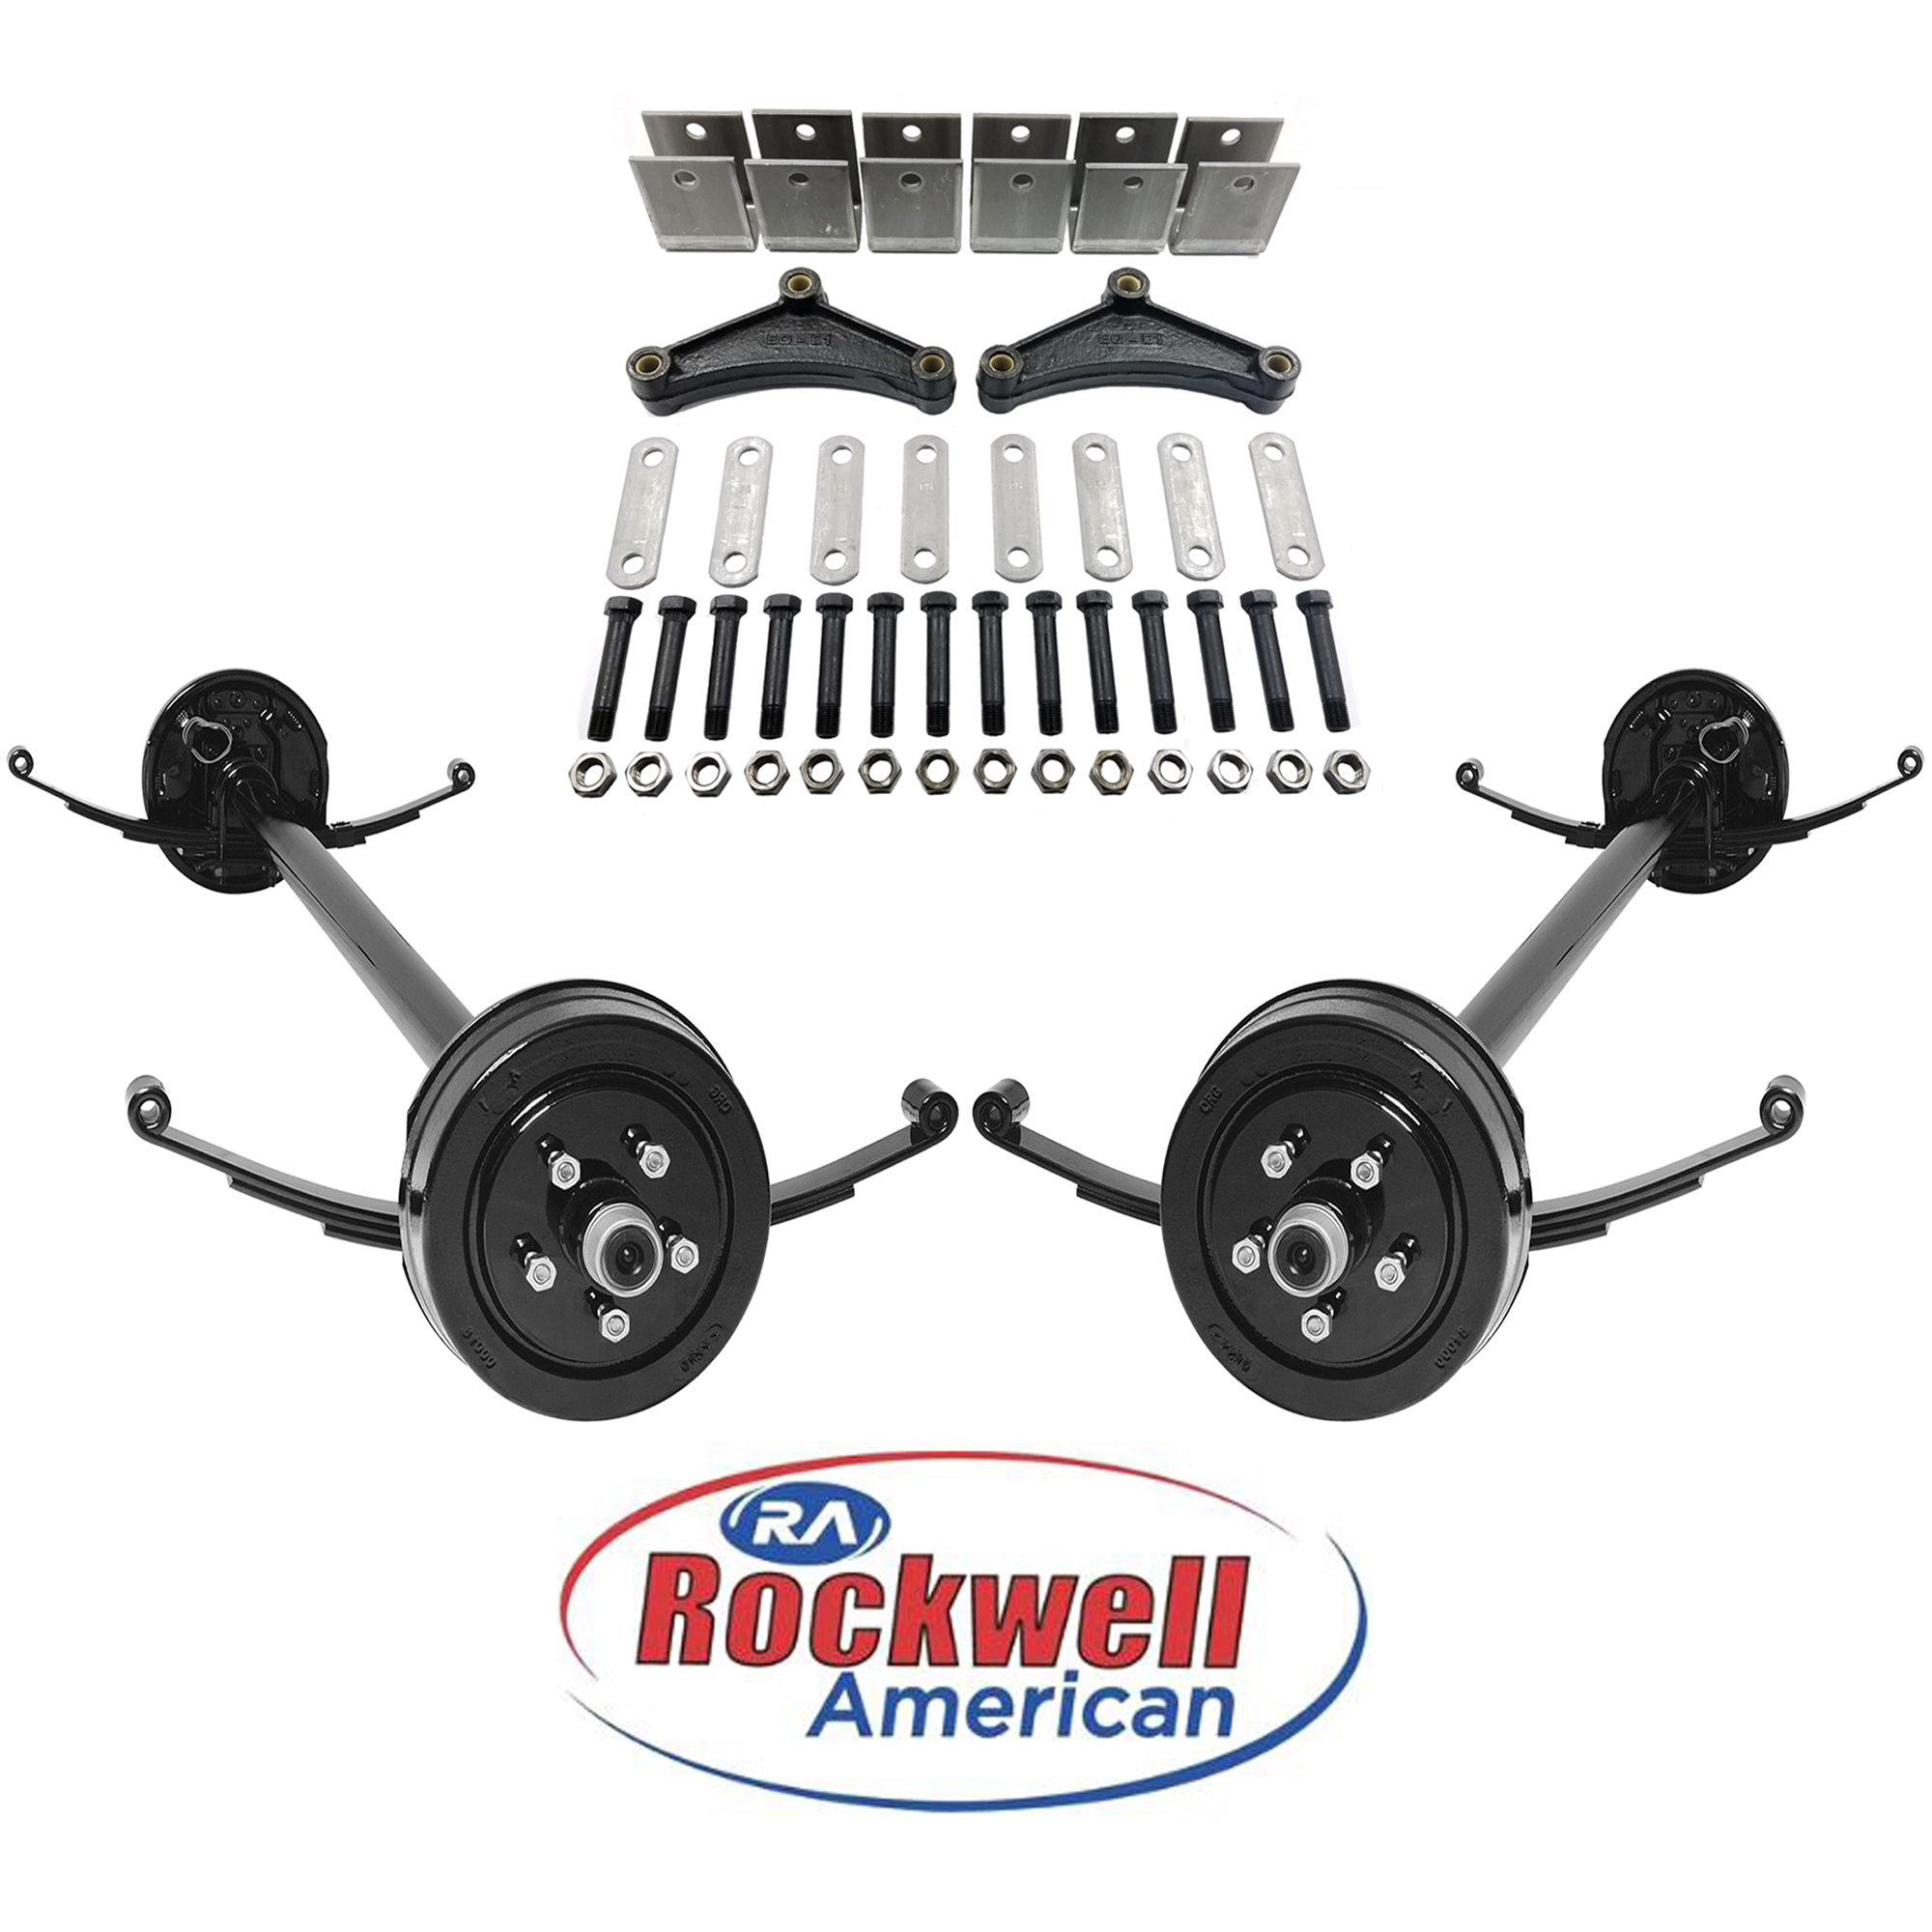 Includes Trailer Tires /& Wheels Rockwell American Tandem 5,200 lb Electric Brake Trailer Axle Kit 84 Hubface - 70 Spring Center